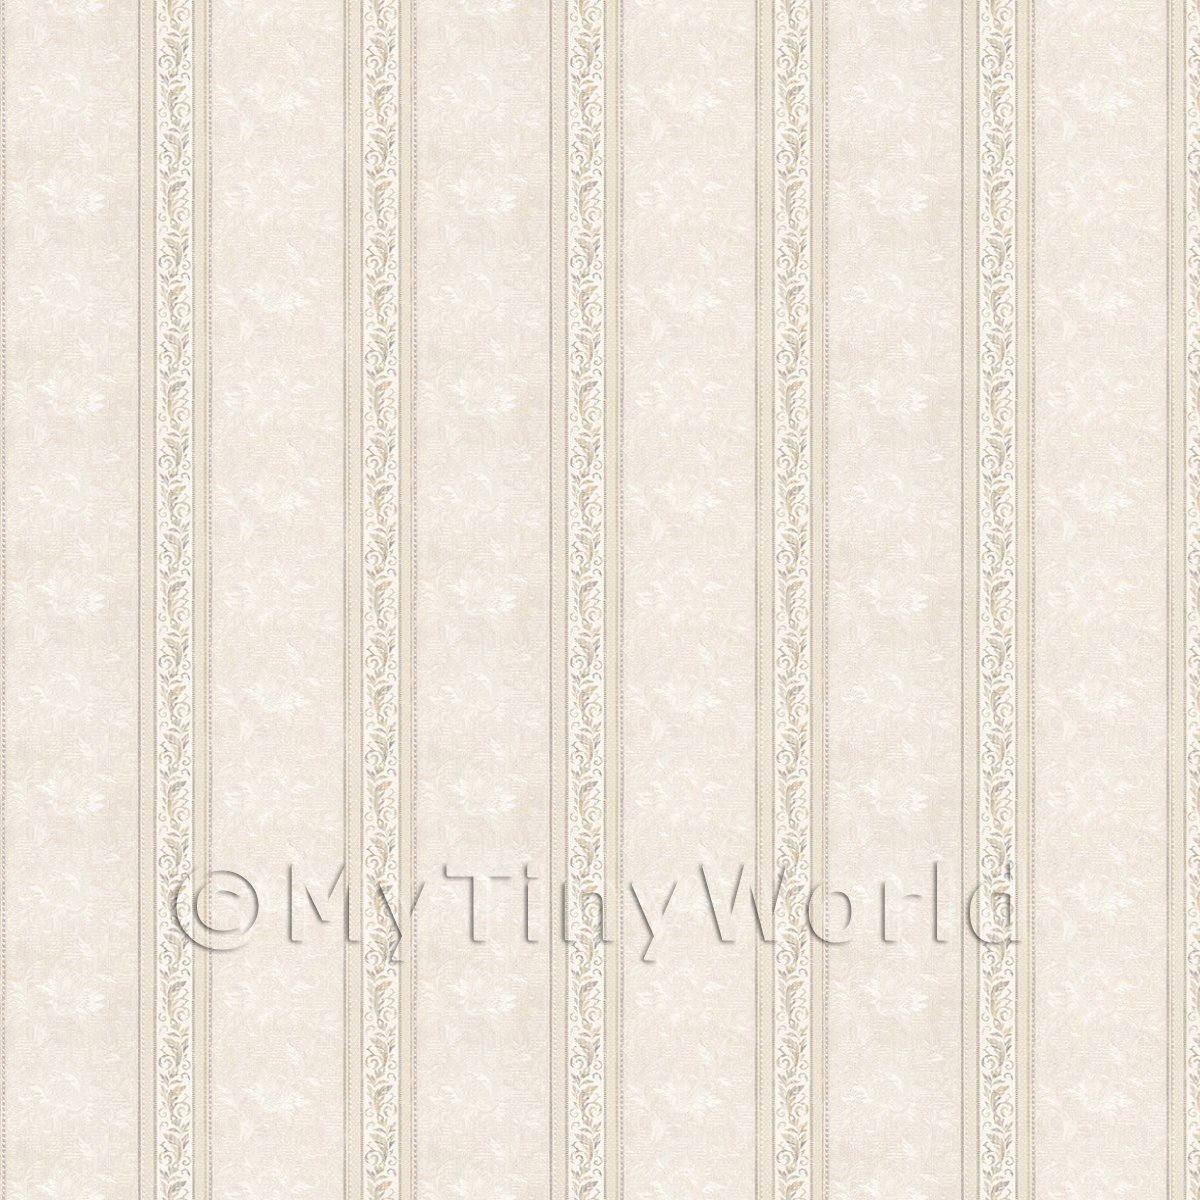 Dolls House Miniature Ornate Pale Beige And Grey Striped Wallpaper